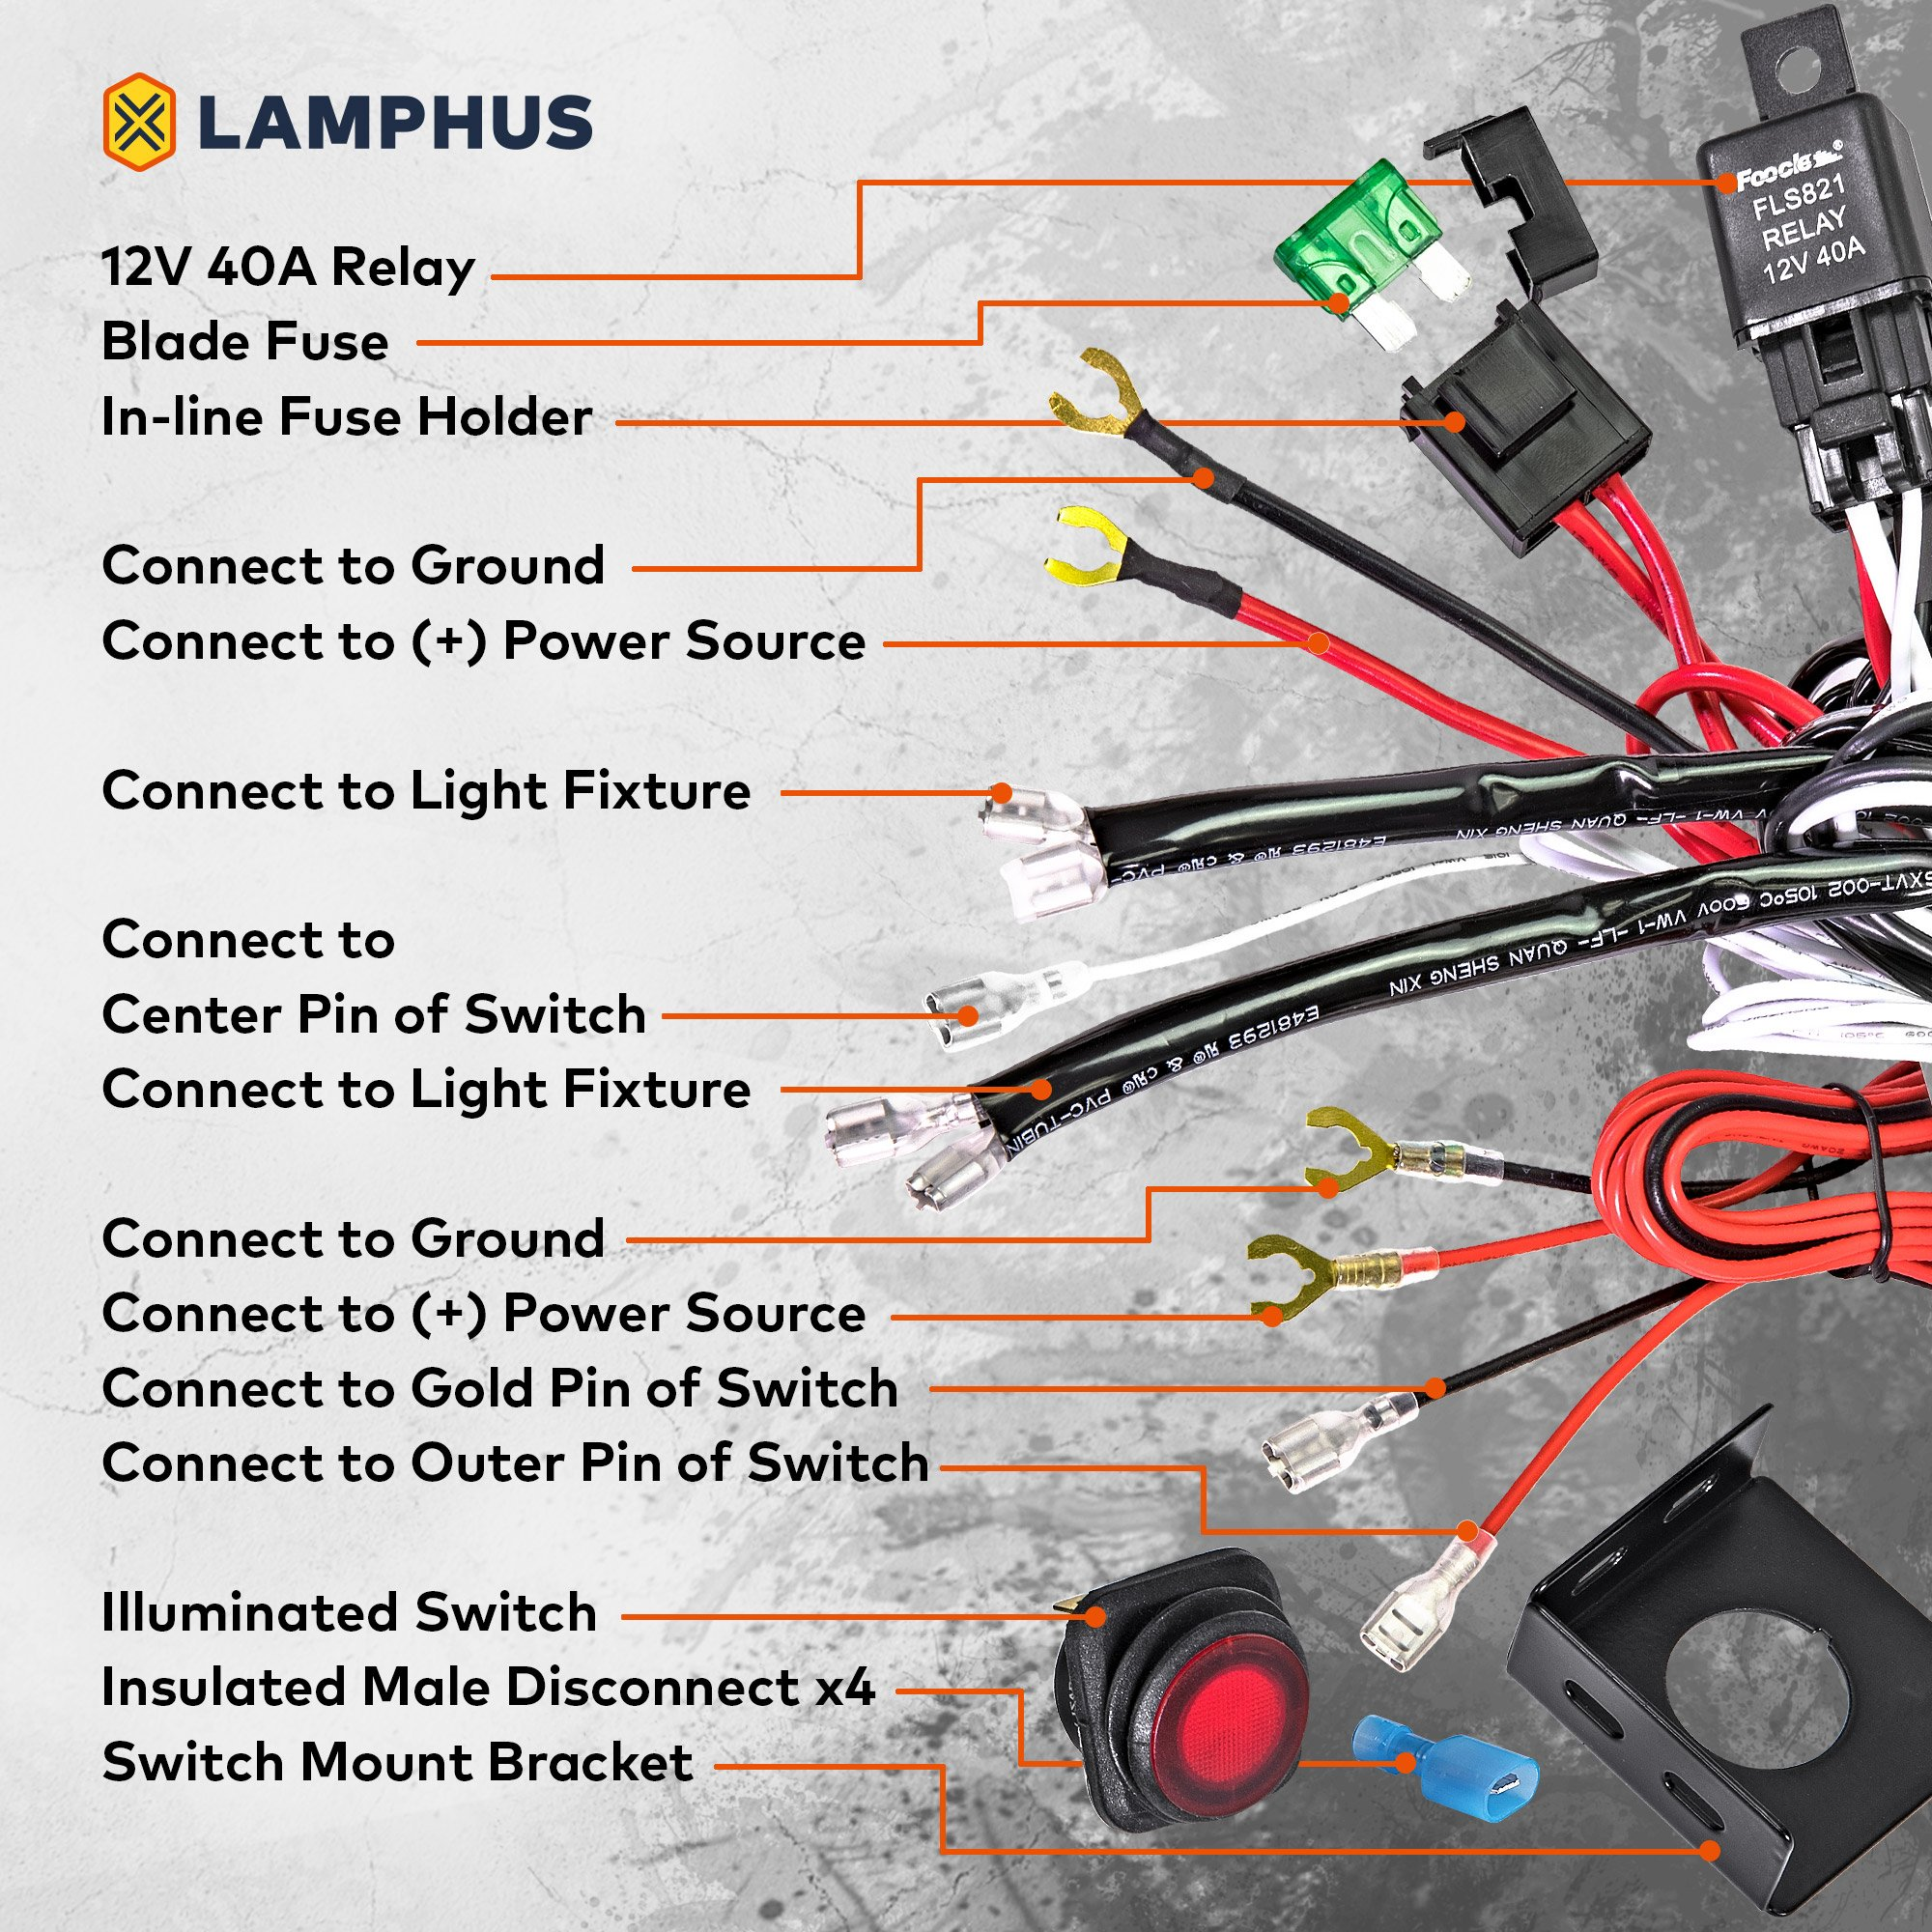 Lamphus 13 Off Road Atv Jeep Led Light Bar Wiring Harness Kit Combining A Waterproof Switch Mounting Bracket 30a Fuse 40a Relay Usa Warranty Orwh01